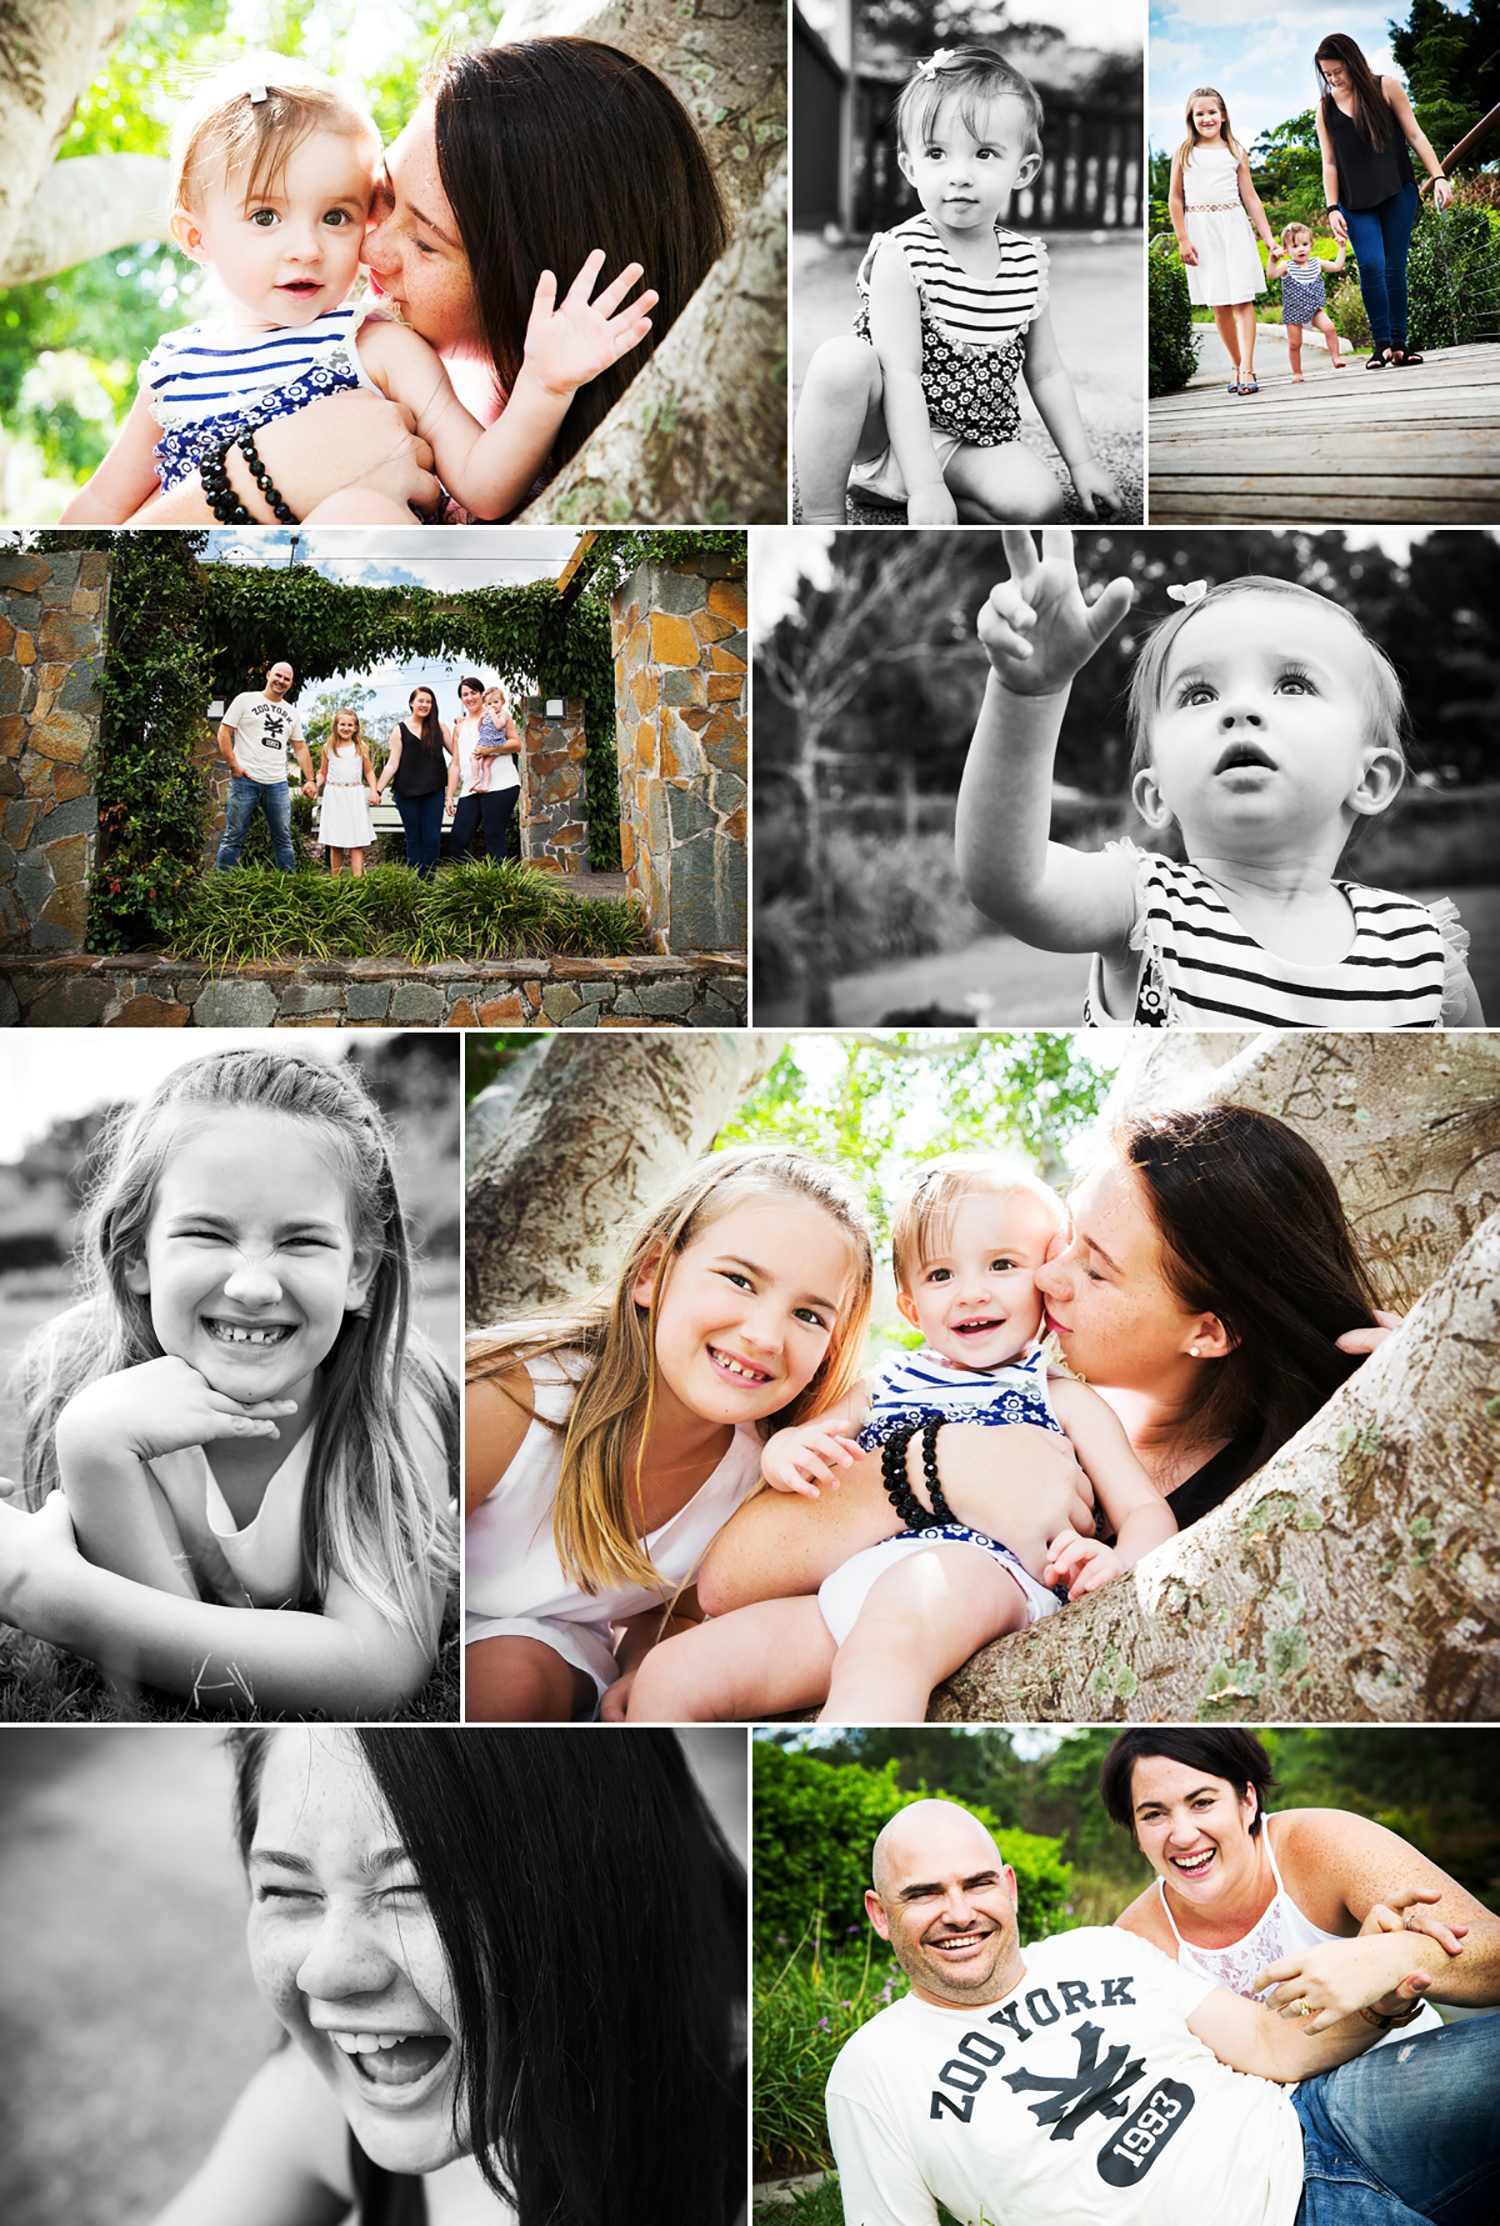 brisbane family photographers, family portrait photography brisbane